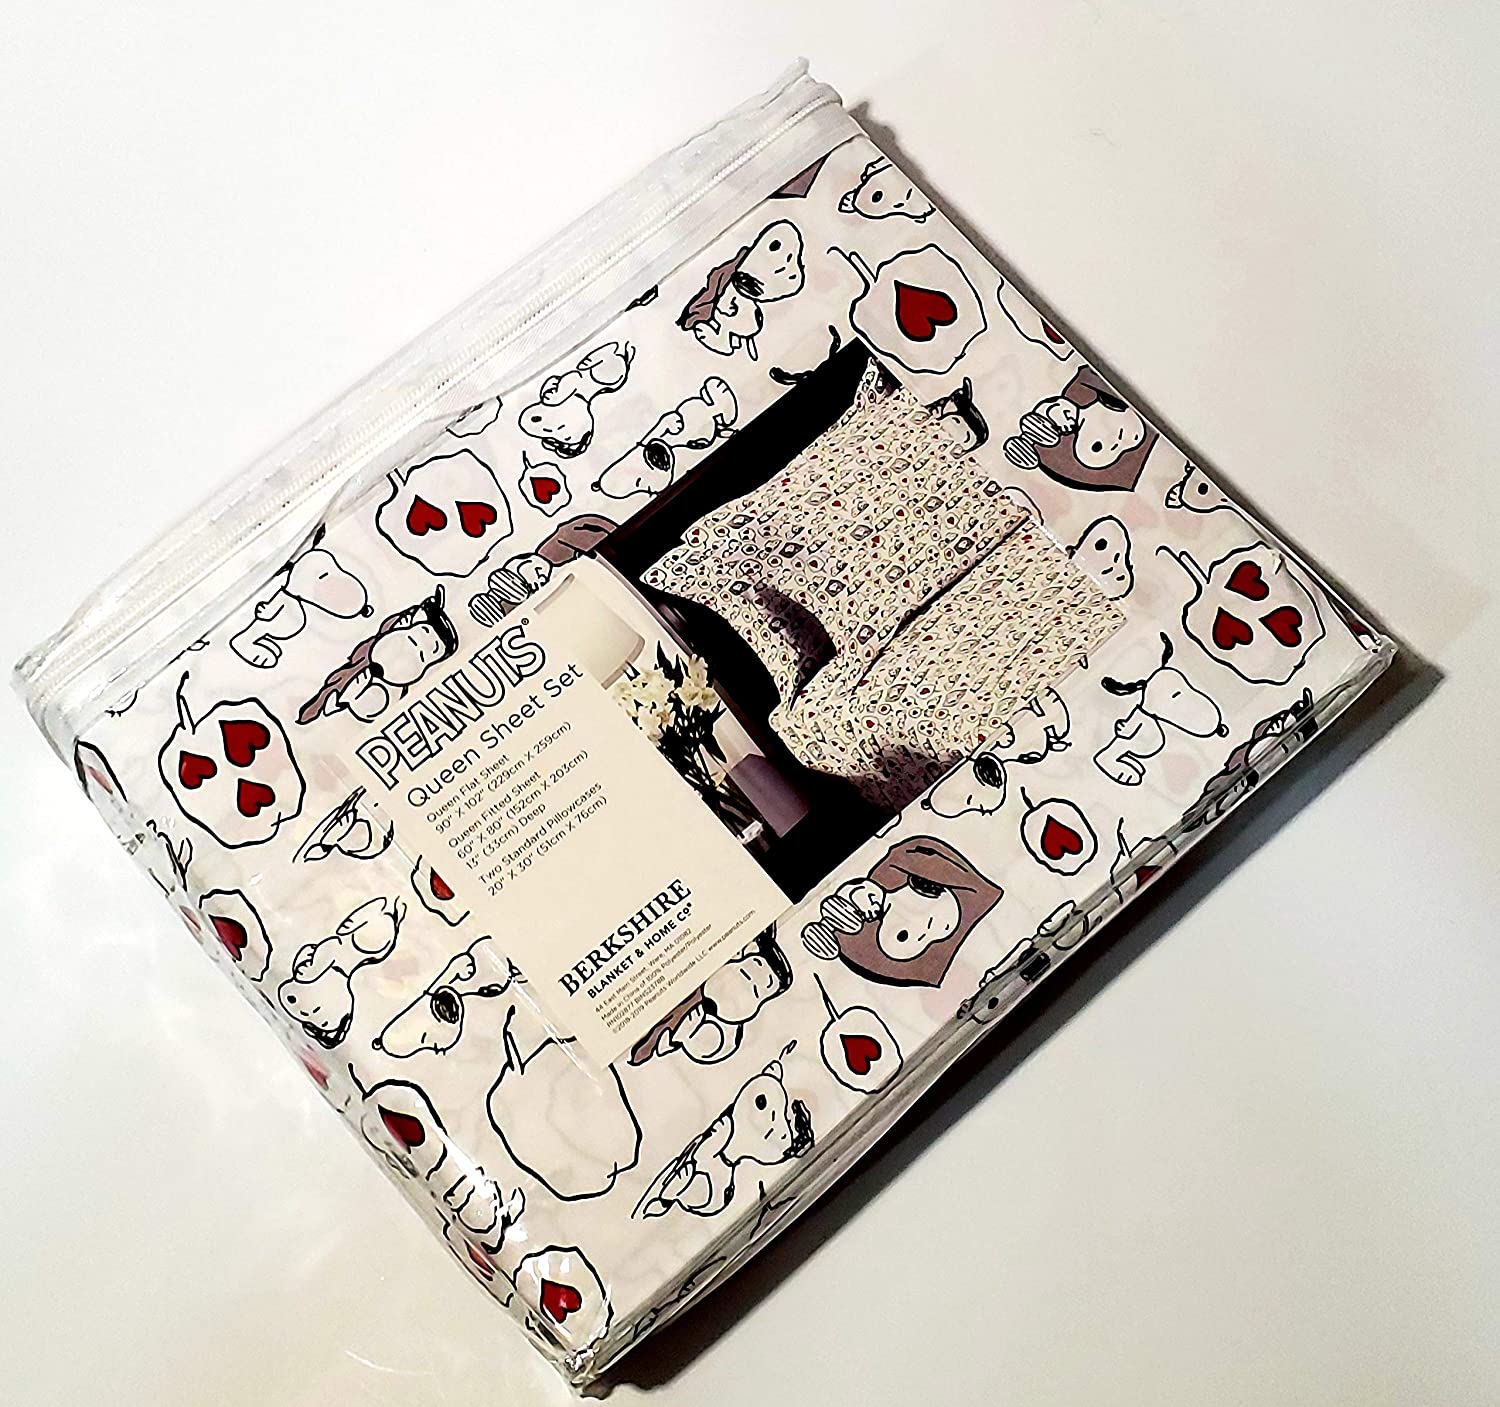 Snoopy Queen Bed Sheets Sheet Set One Fitted Sheet One Flat Sheet Two Pillowcases Machine Washable Tumble Dry Berkshire Blanket and Home Co